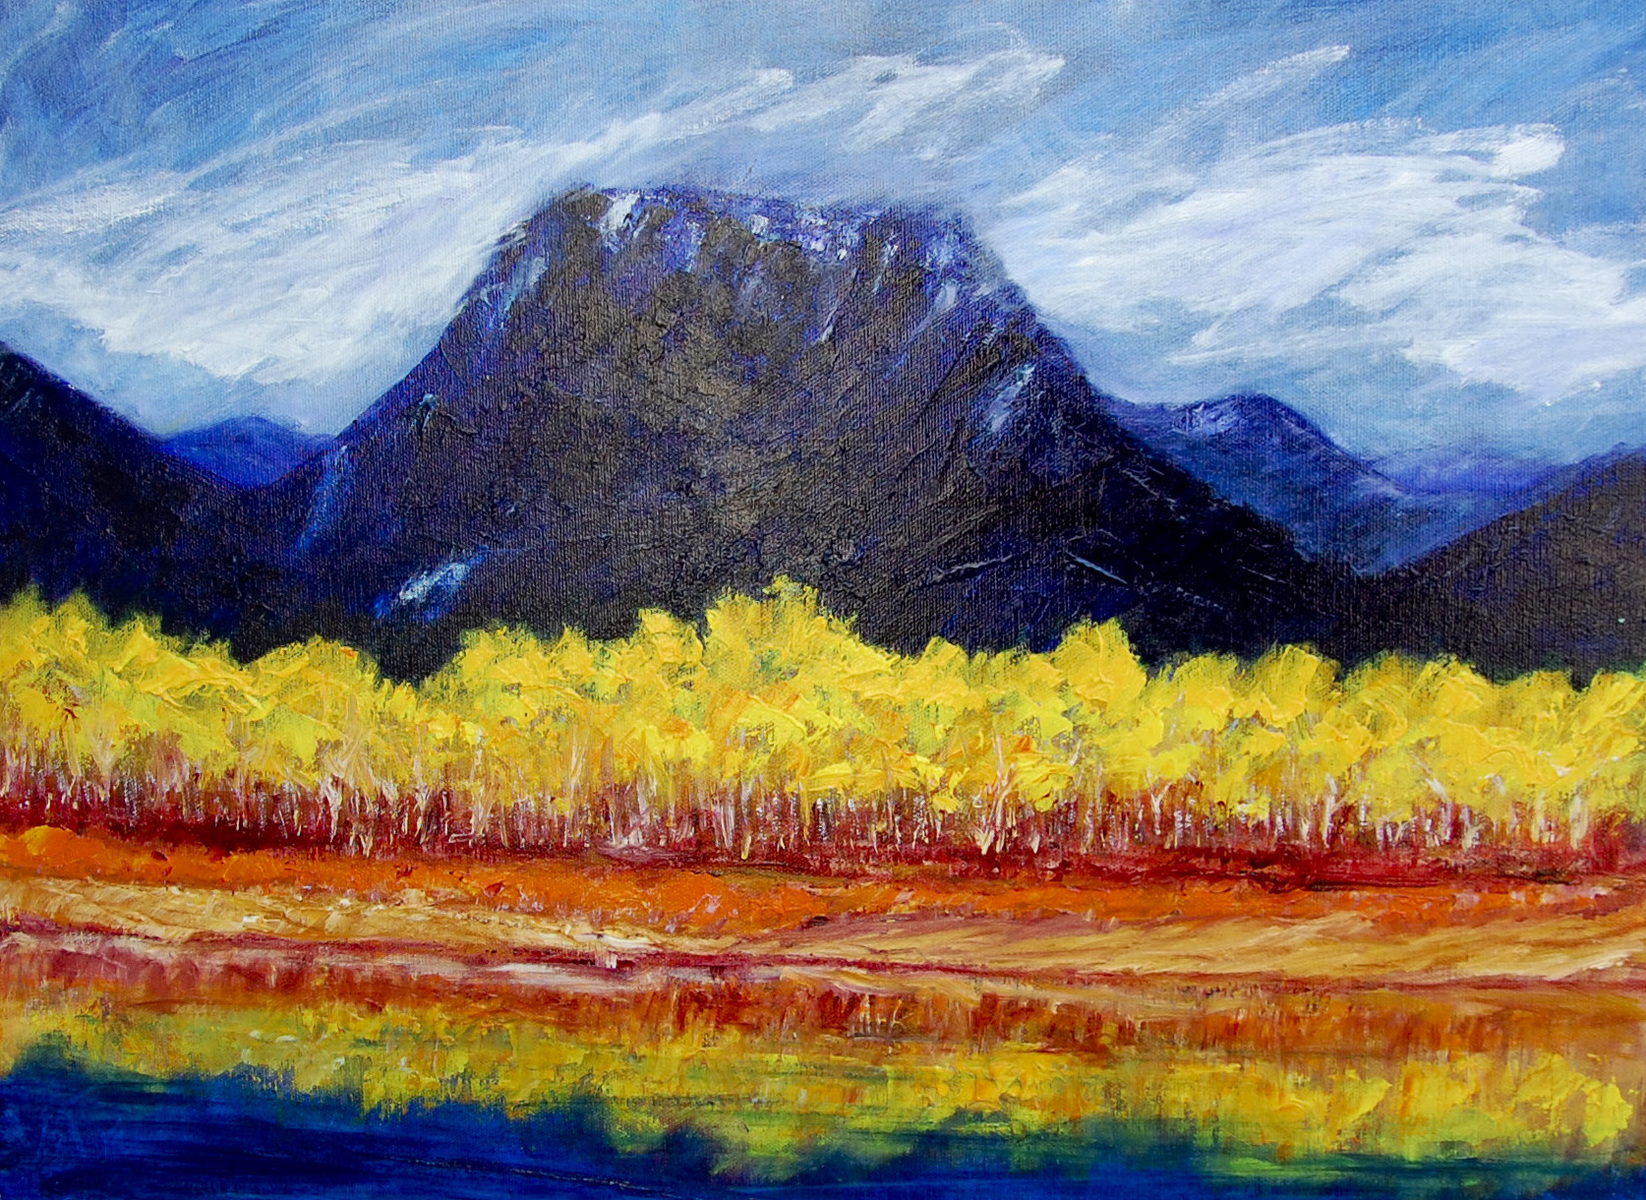 Landscapes Aspens Taking a Bow